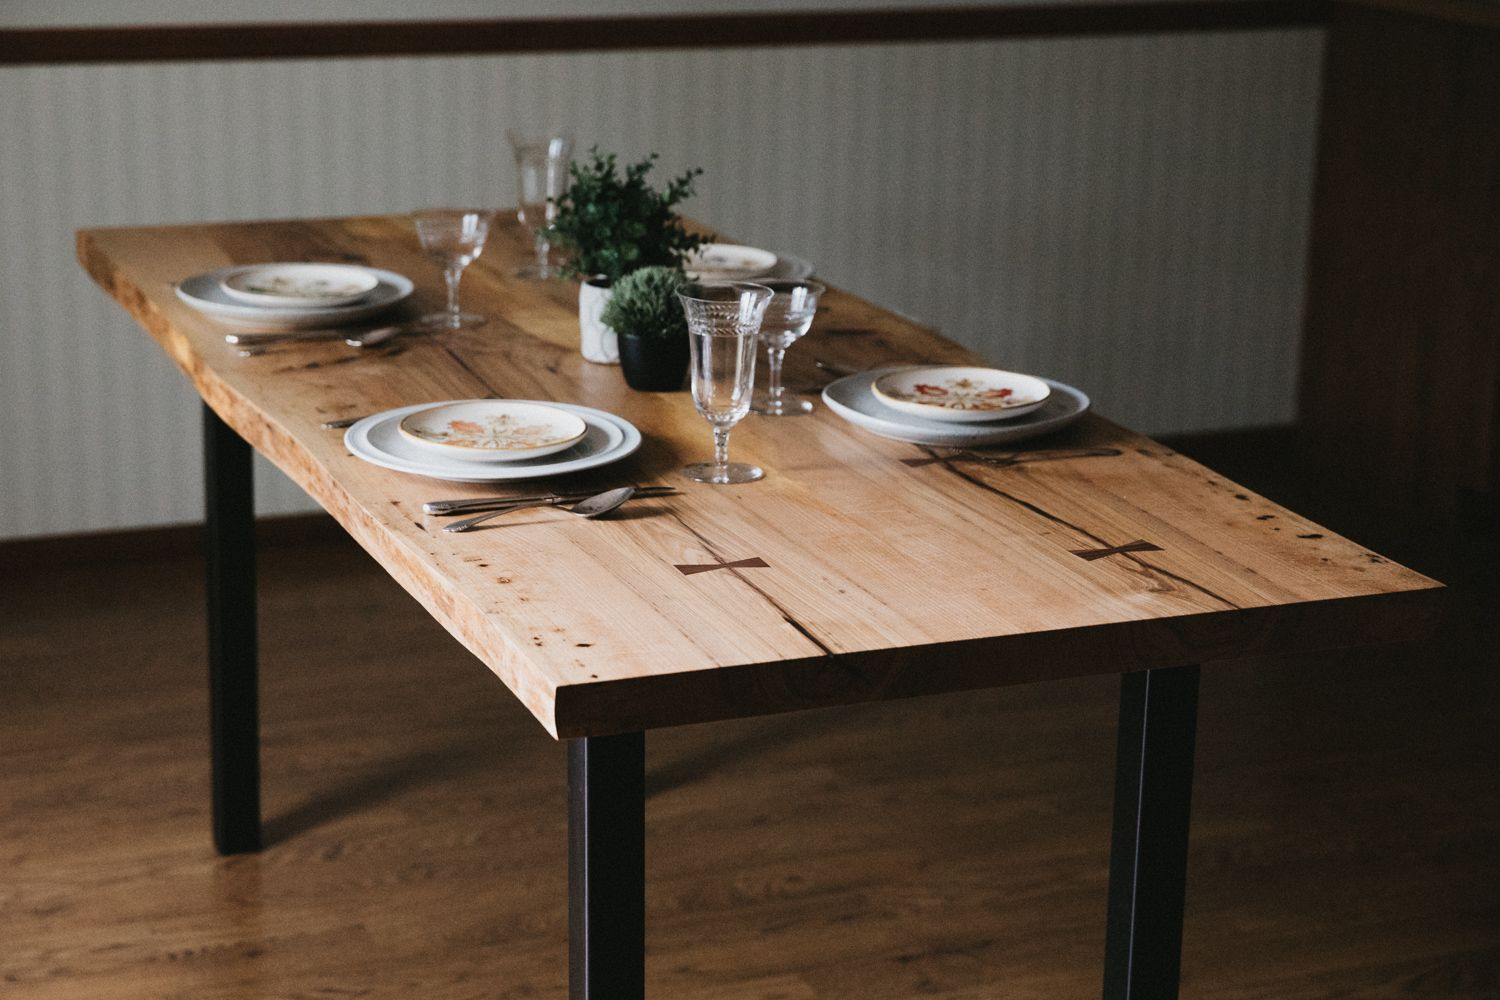 Handmade Arizona Ash Wood Slab Dining Table By Tooth